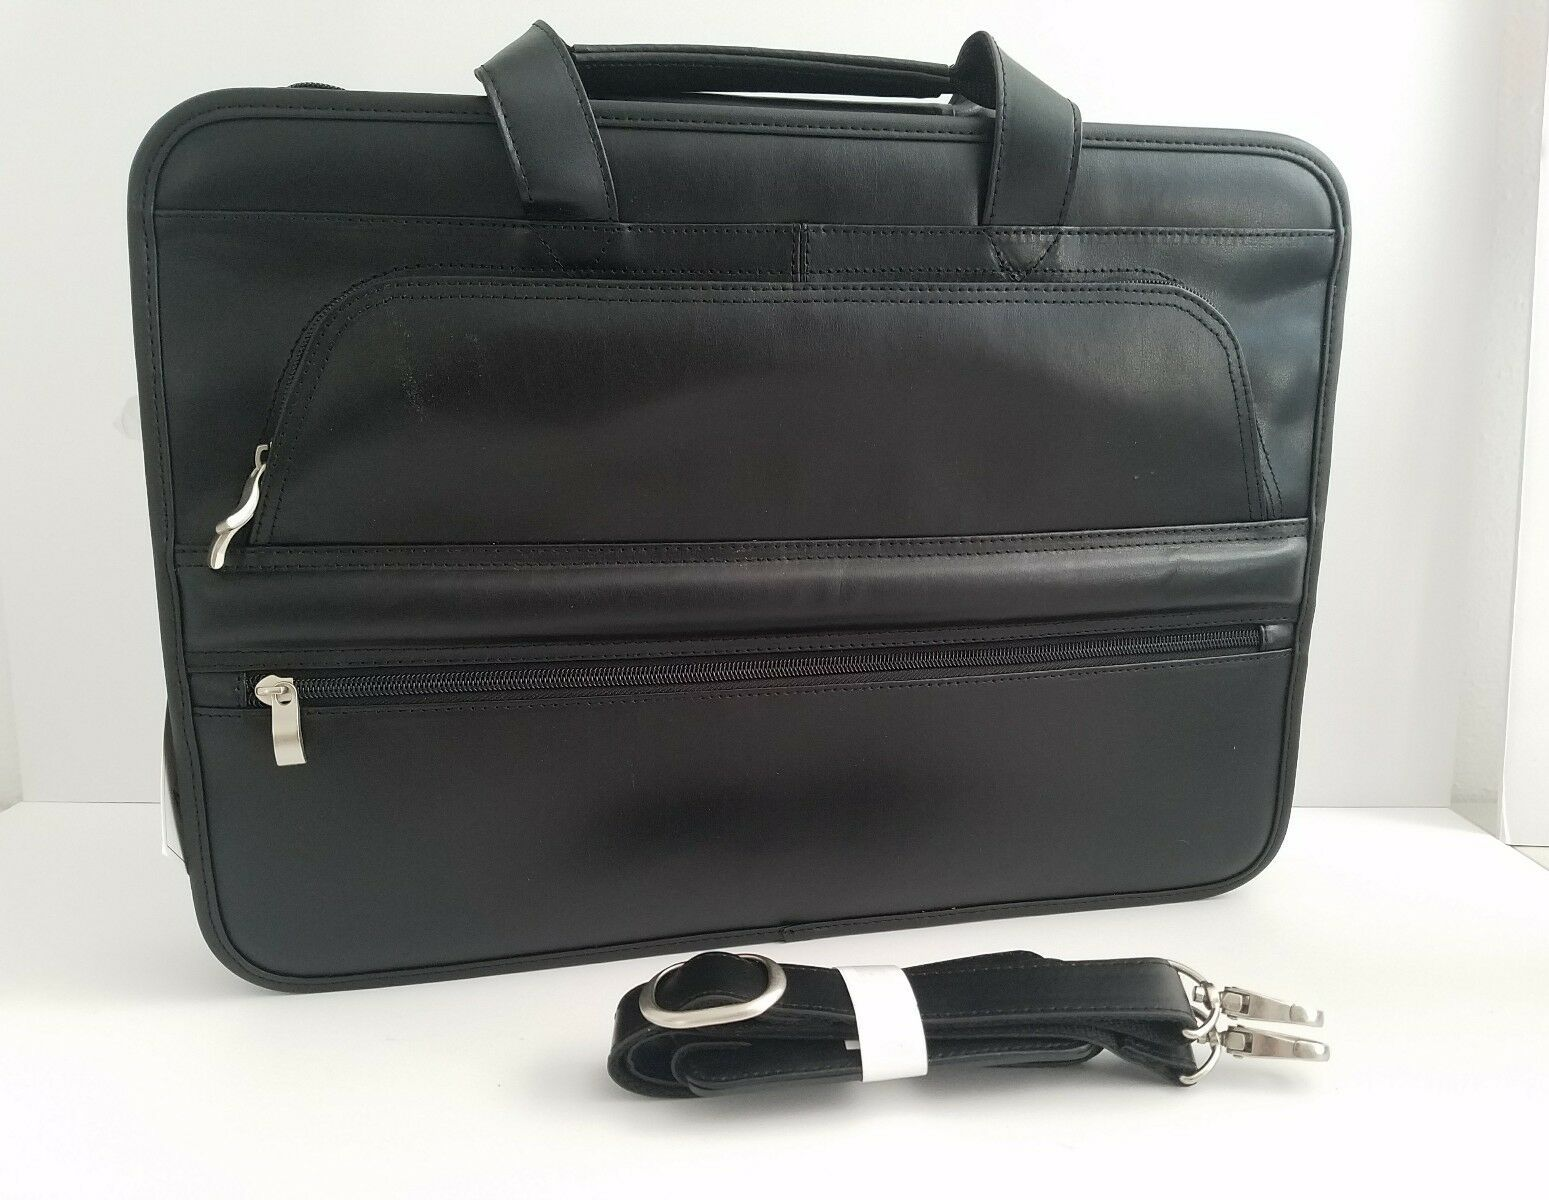 Primary image for Kingport Industries New Black Leather Briefcase with Tag Style 8240-BK w/ Strap